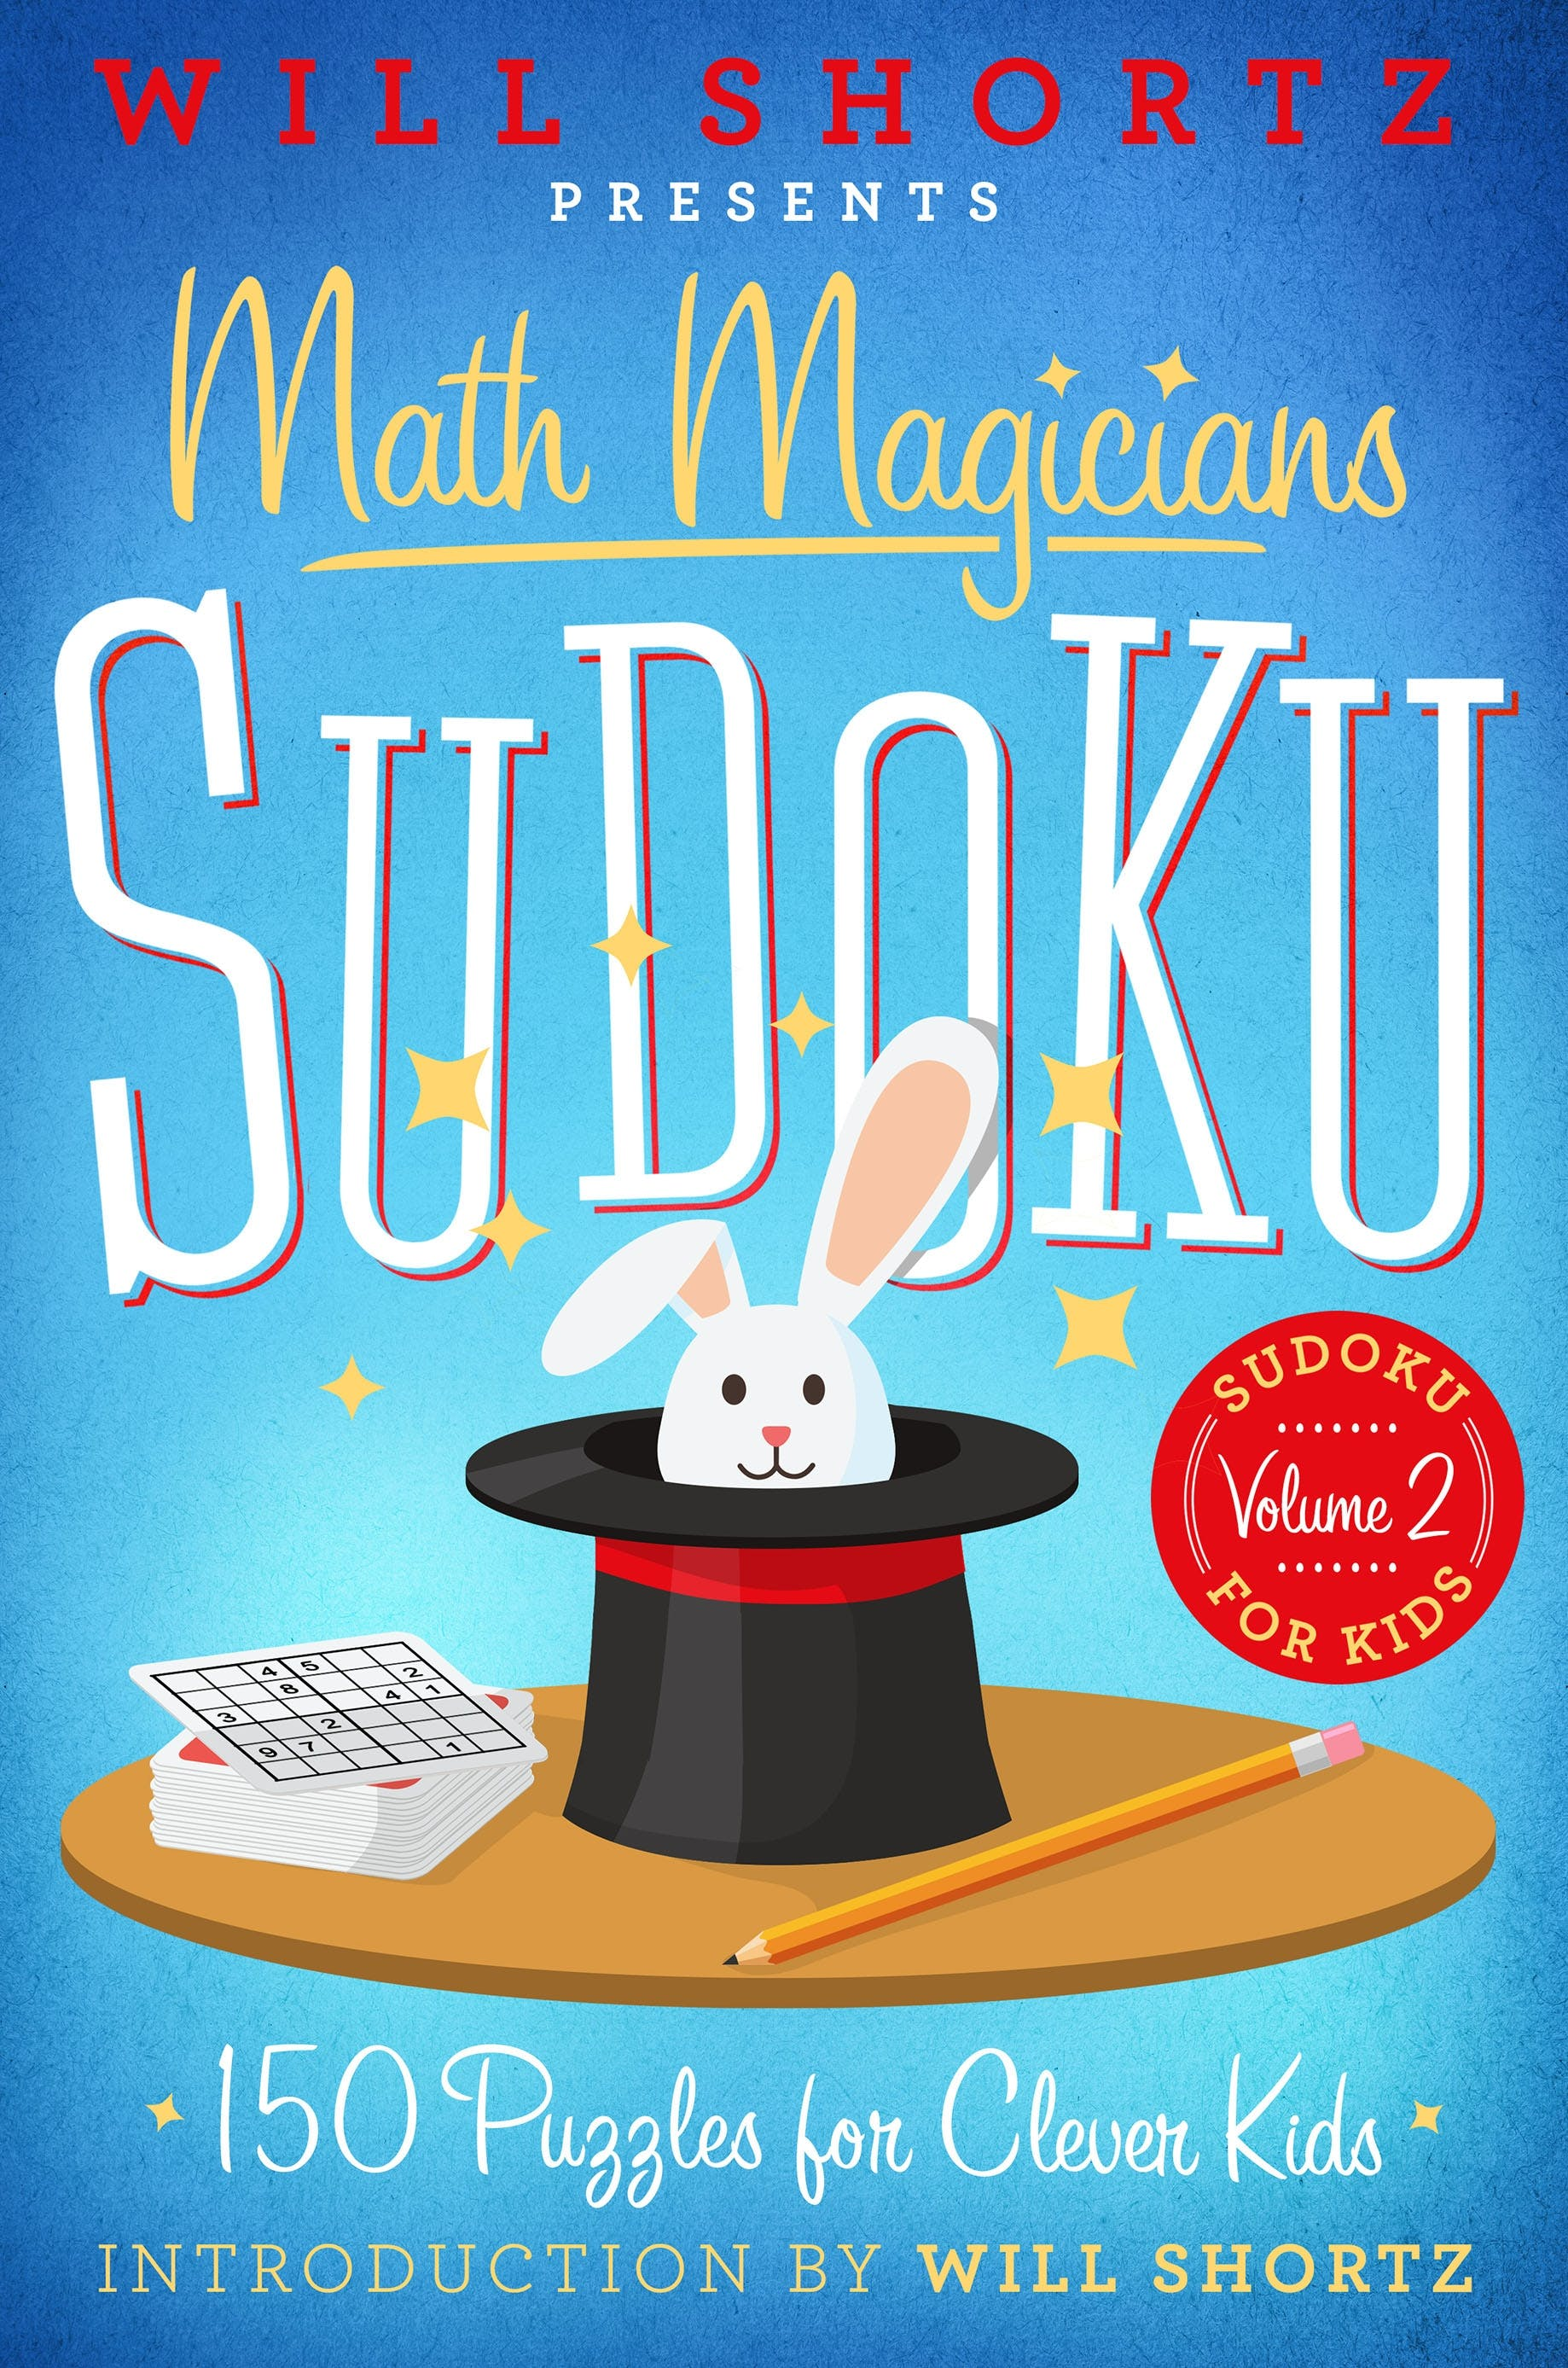 Image of Will Shortz Presents Math Magicians Sudoku: 150 Puzzles for Clever Kids